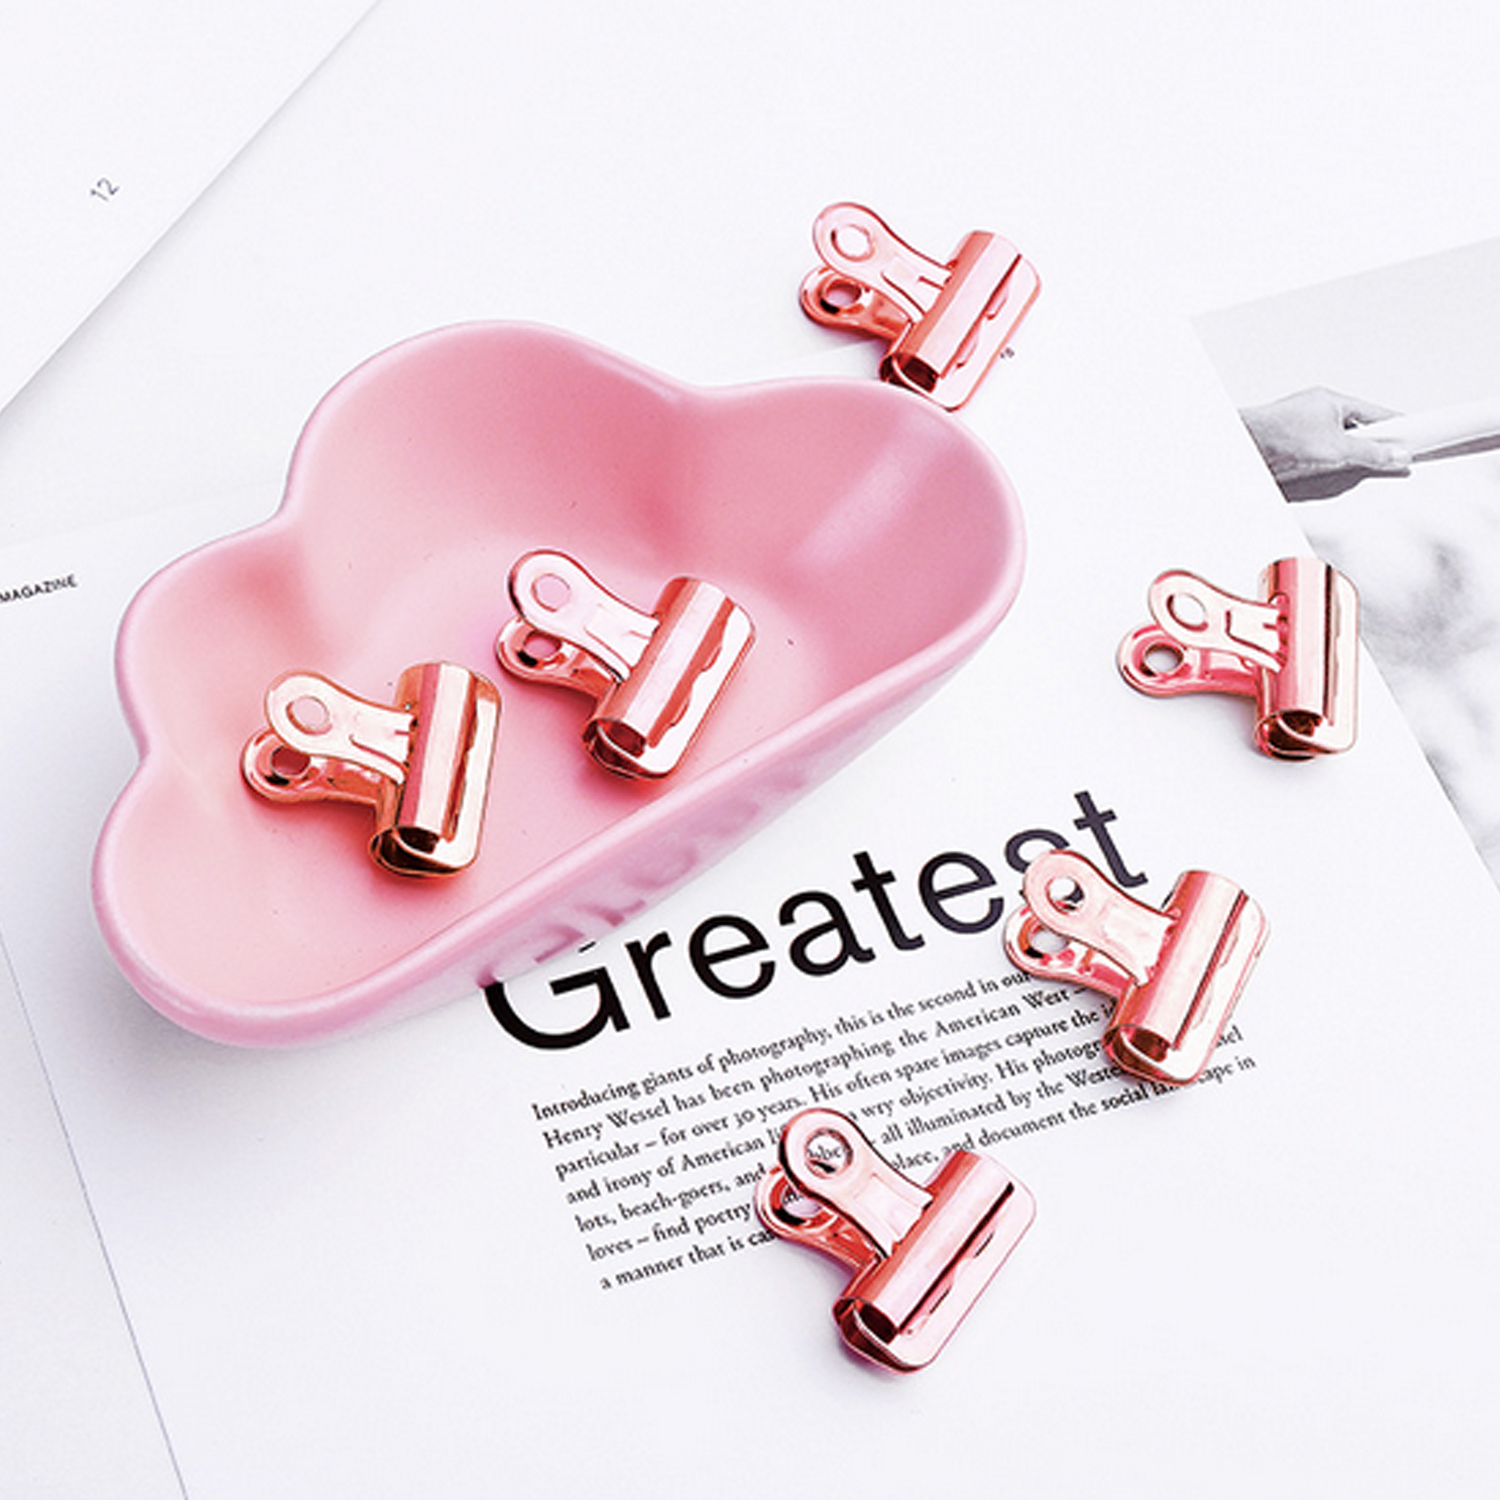 15PCS 25mm Metal Hinge Bulldog Clips With Push Pins For Bulletin Cork Boards Walls Photos Maps Drawings Papers Rose Gold